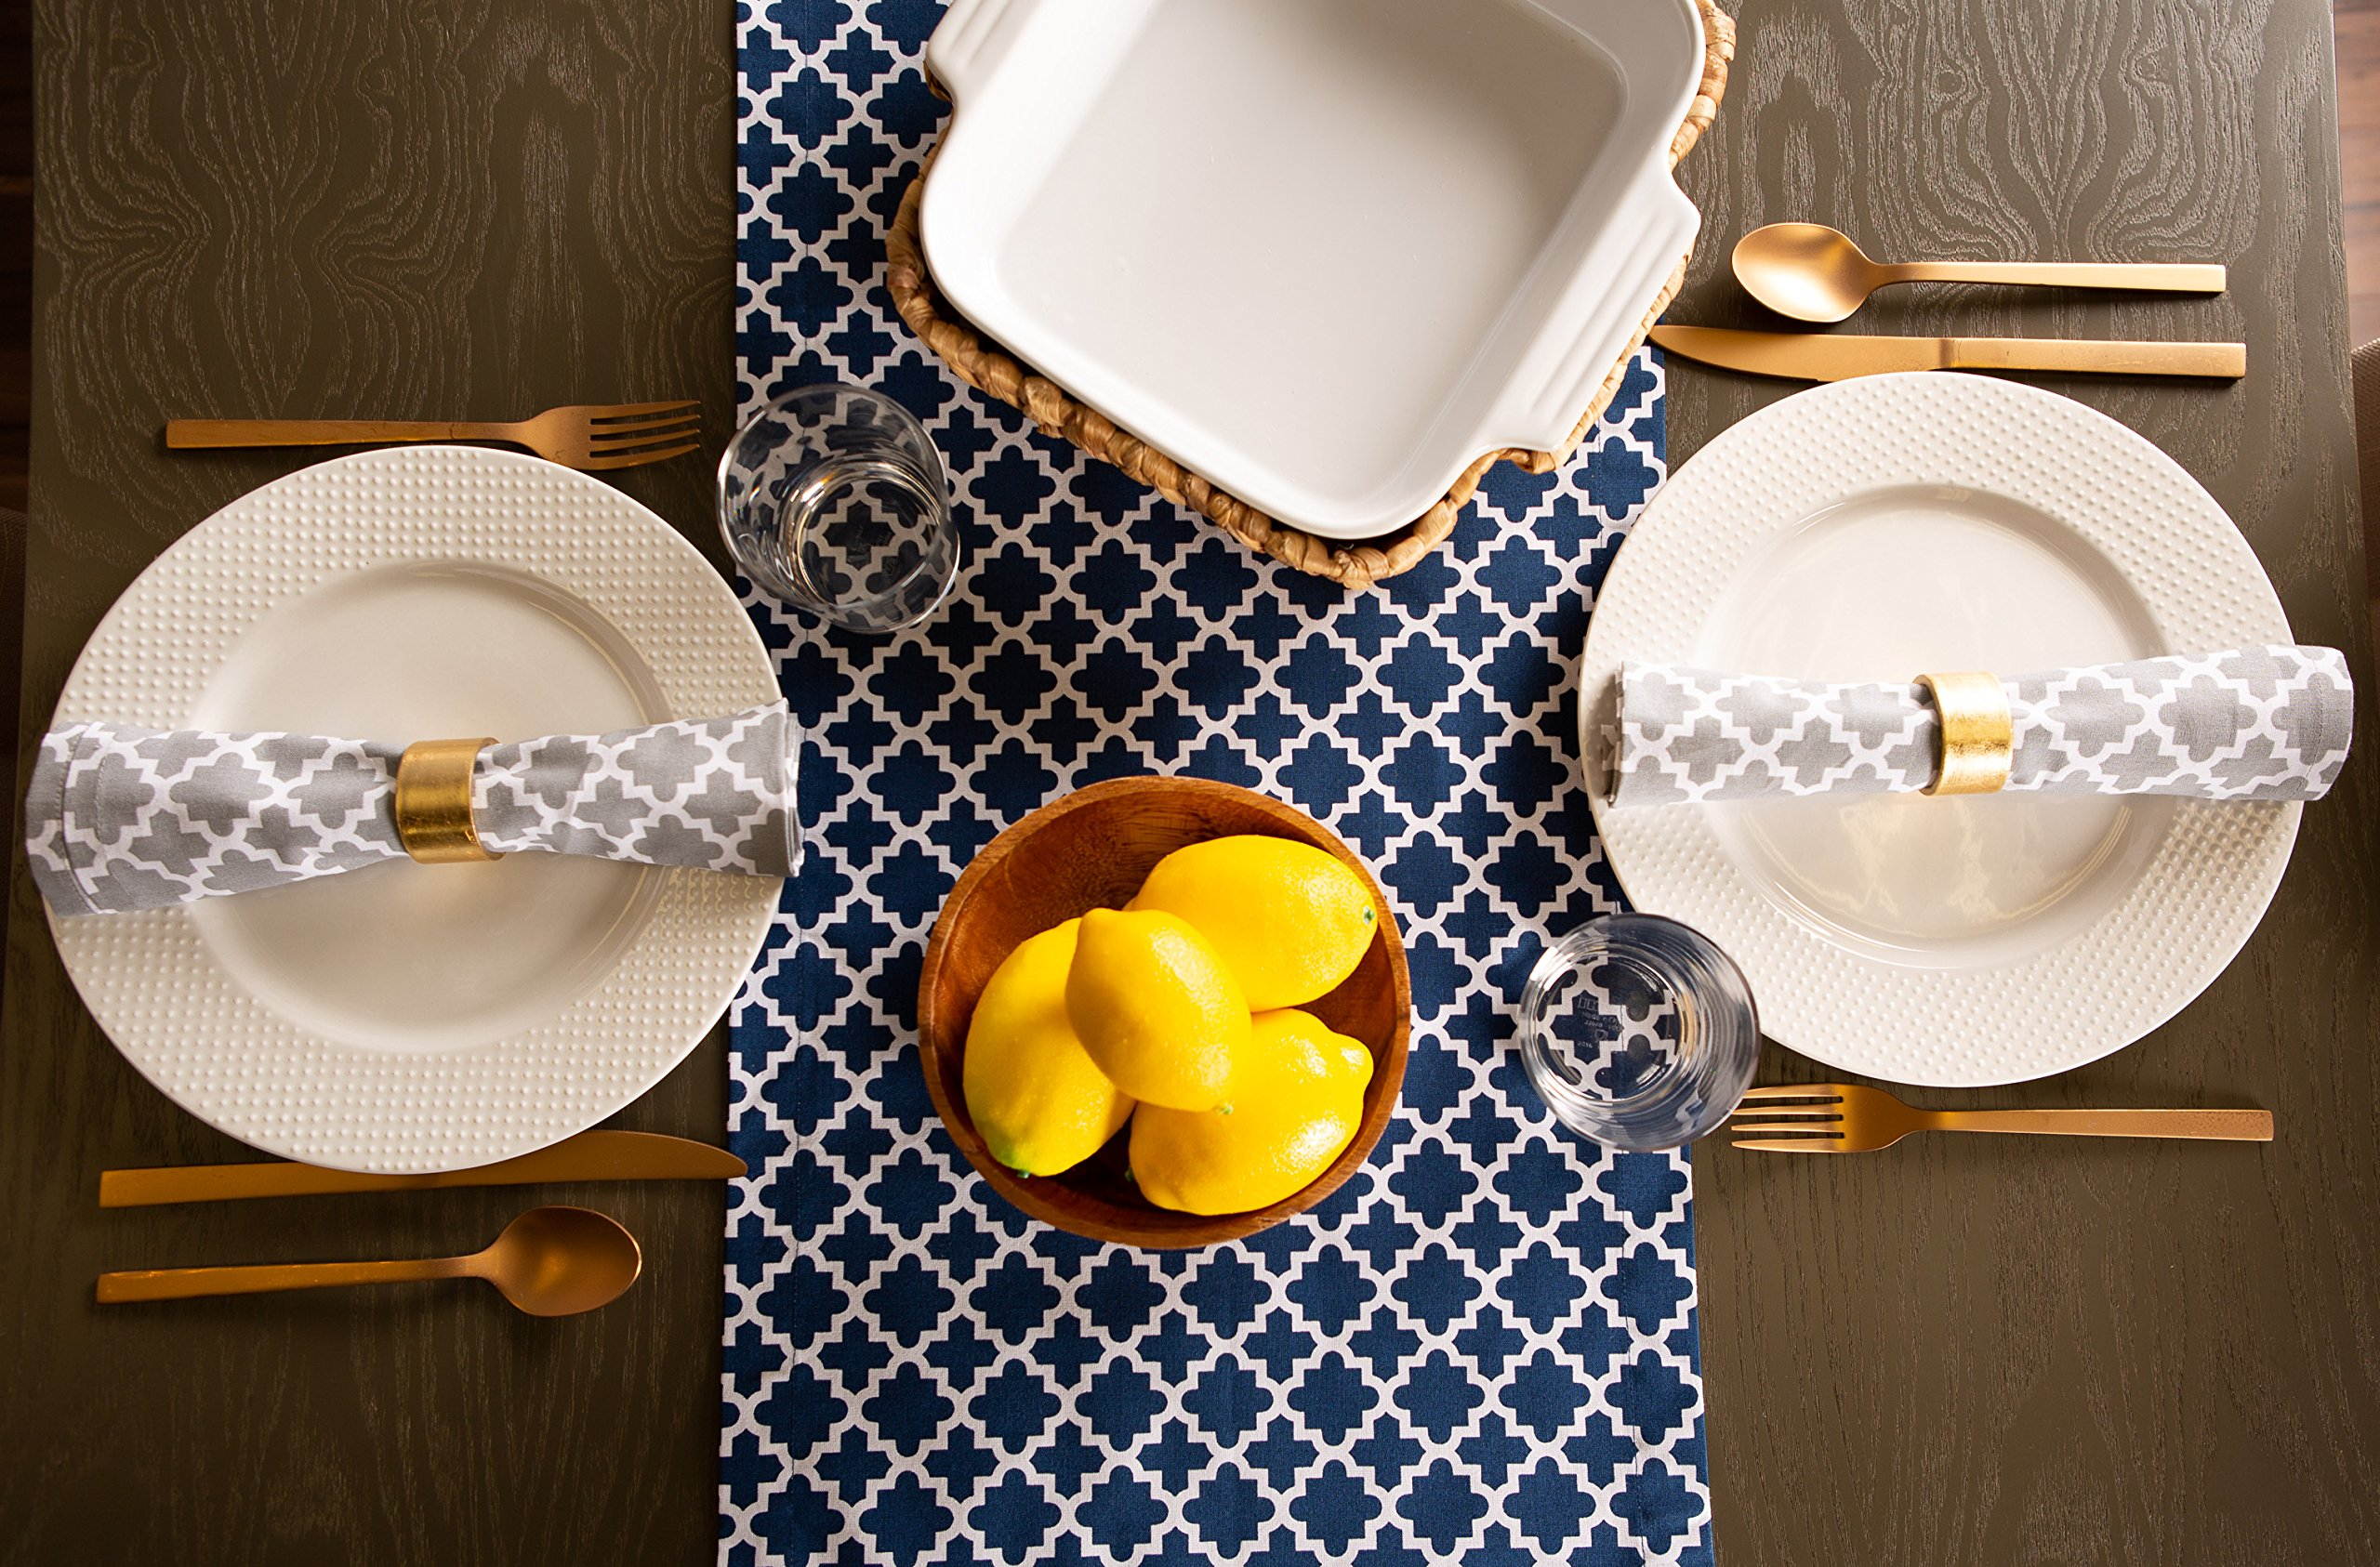 DII Lattice Cotton Table Runner for Dining Room, Foyer Table, Summer Parties and Everyday Use - 14x108'', Nautical Blue and White by DII (Image #6)